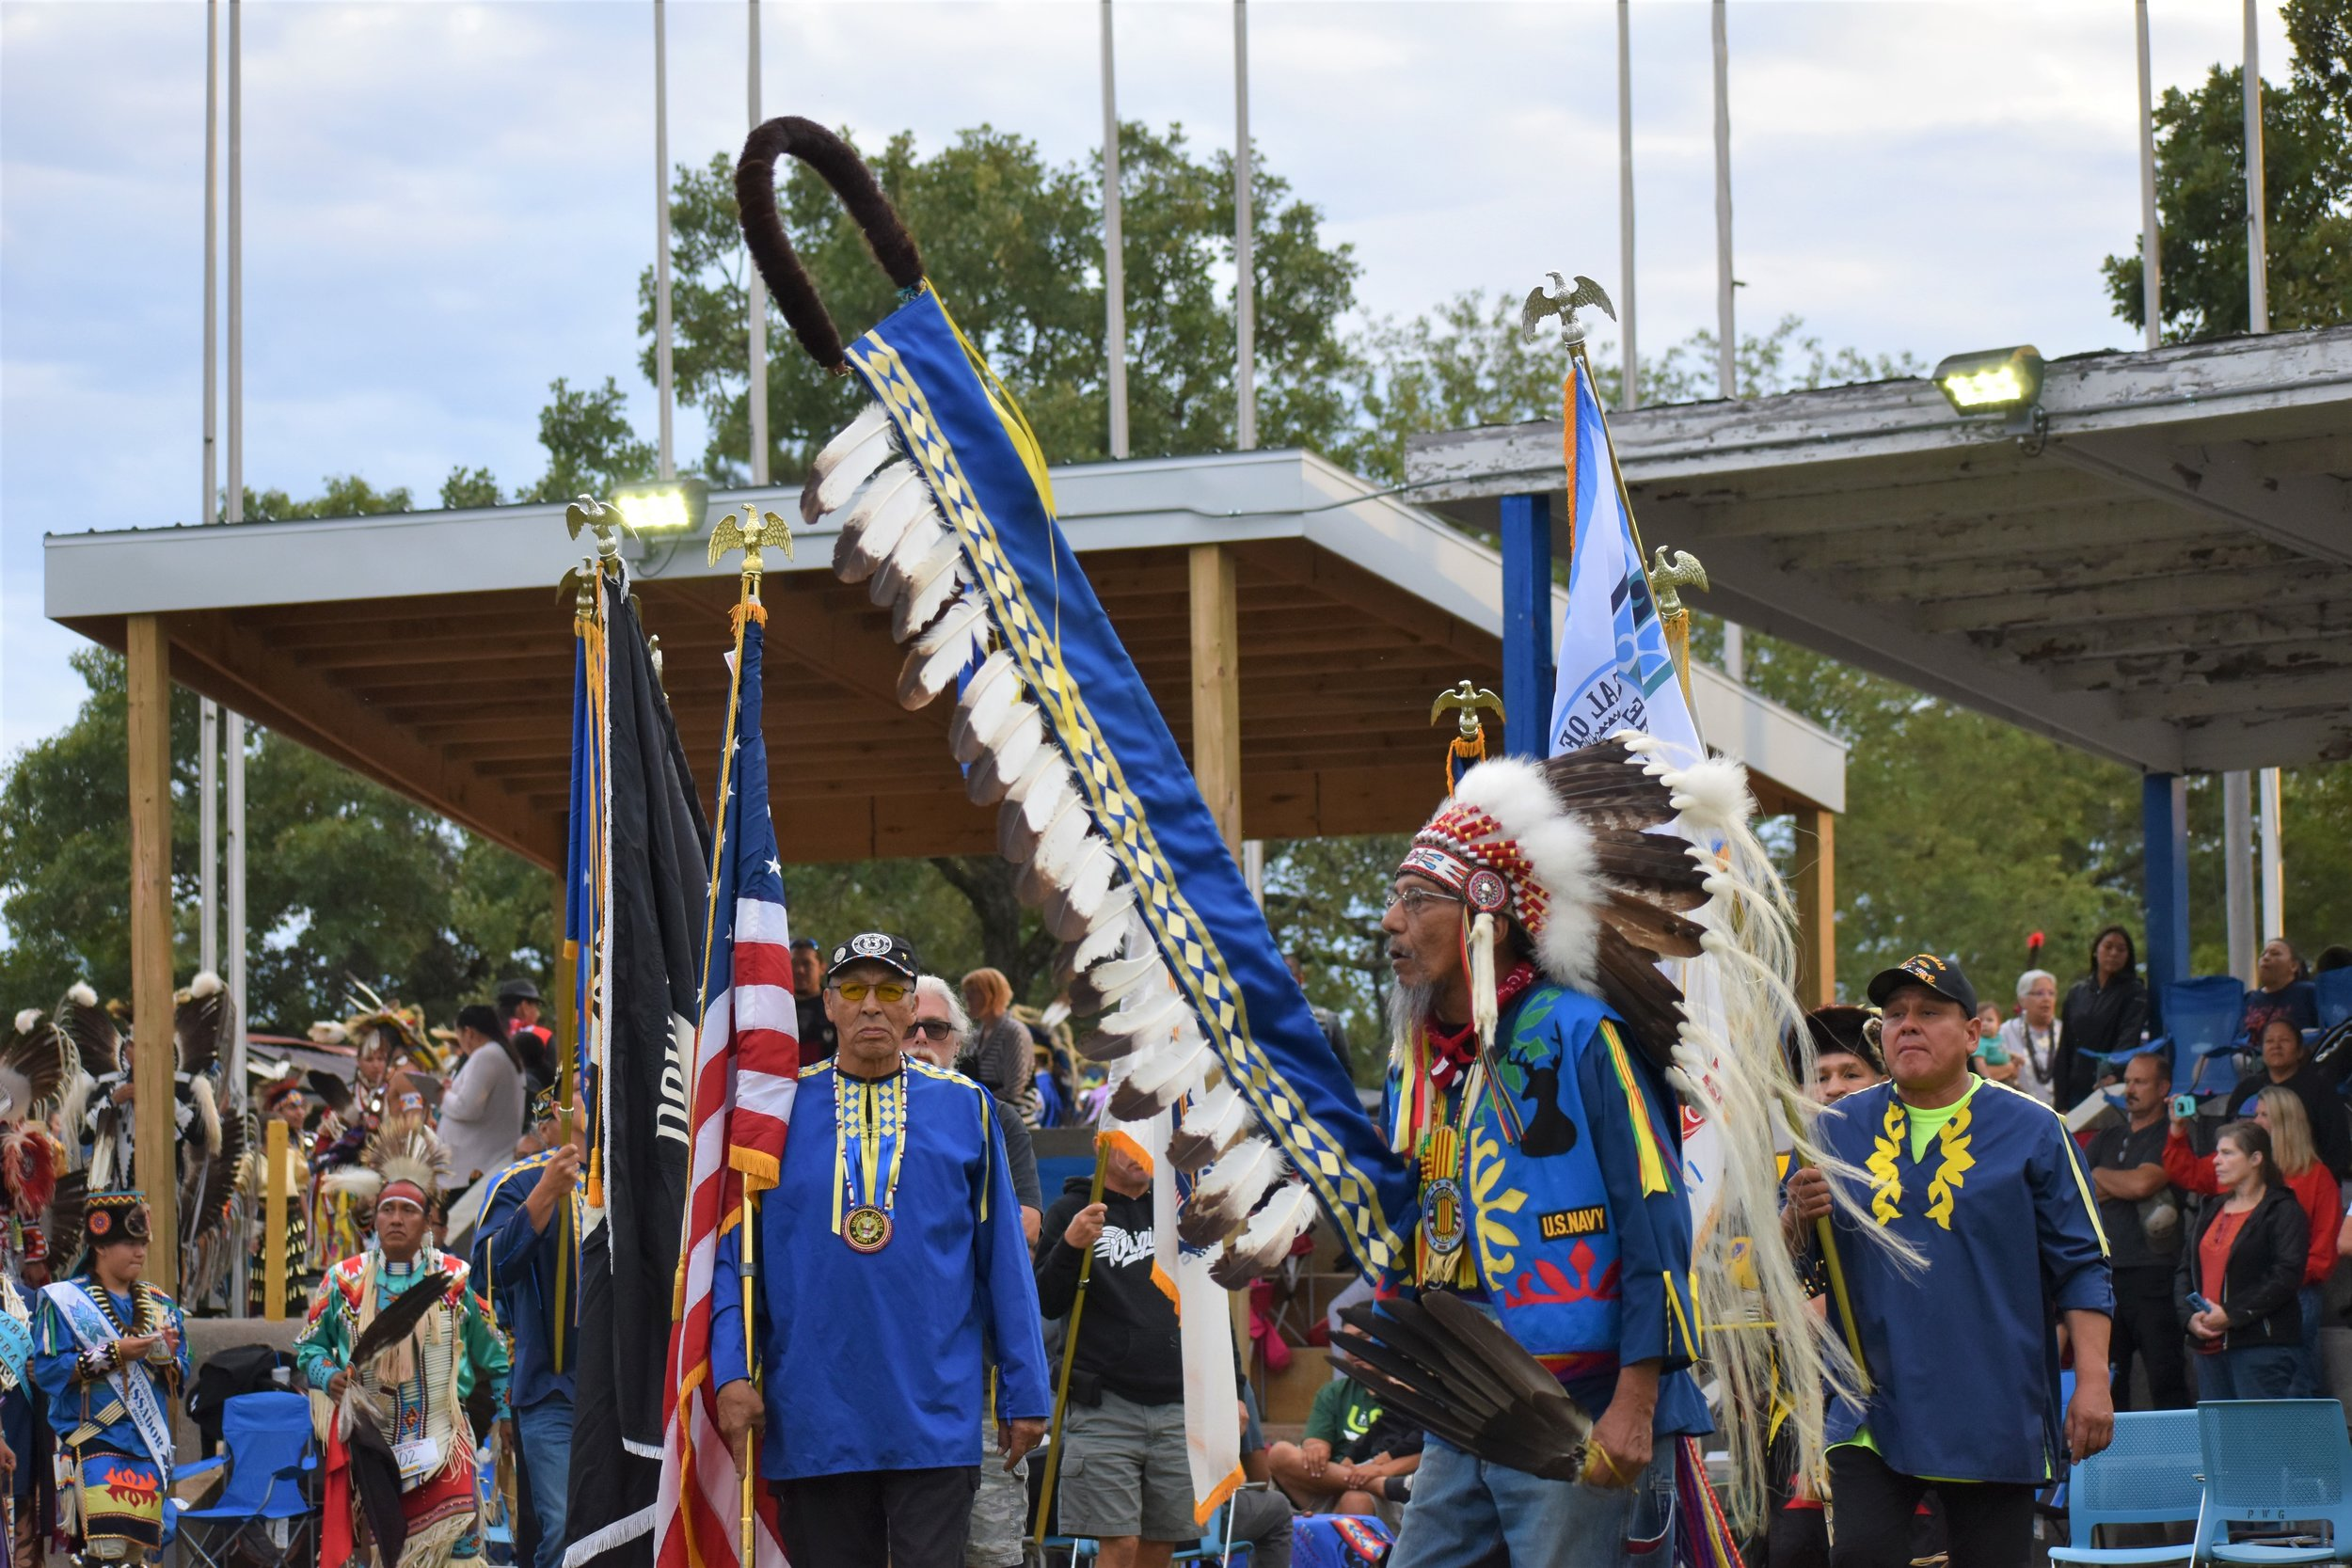 Vietnam Veteran, Mr. Levi Blackdeer carrying in the Ho-Chunk Eagle staff